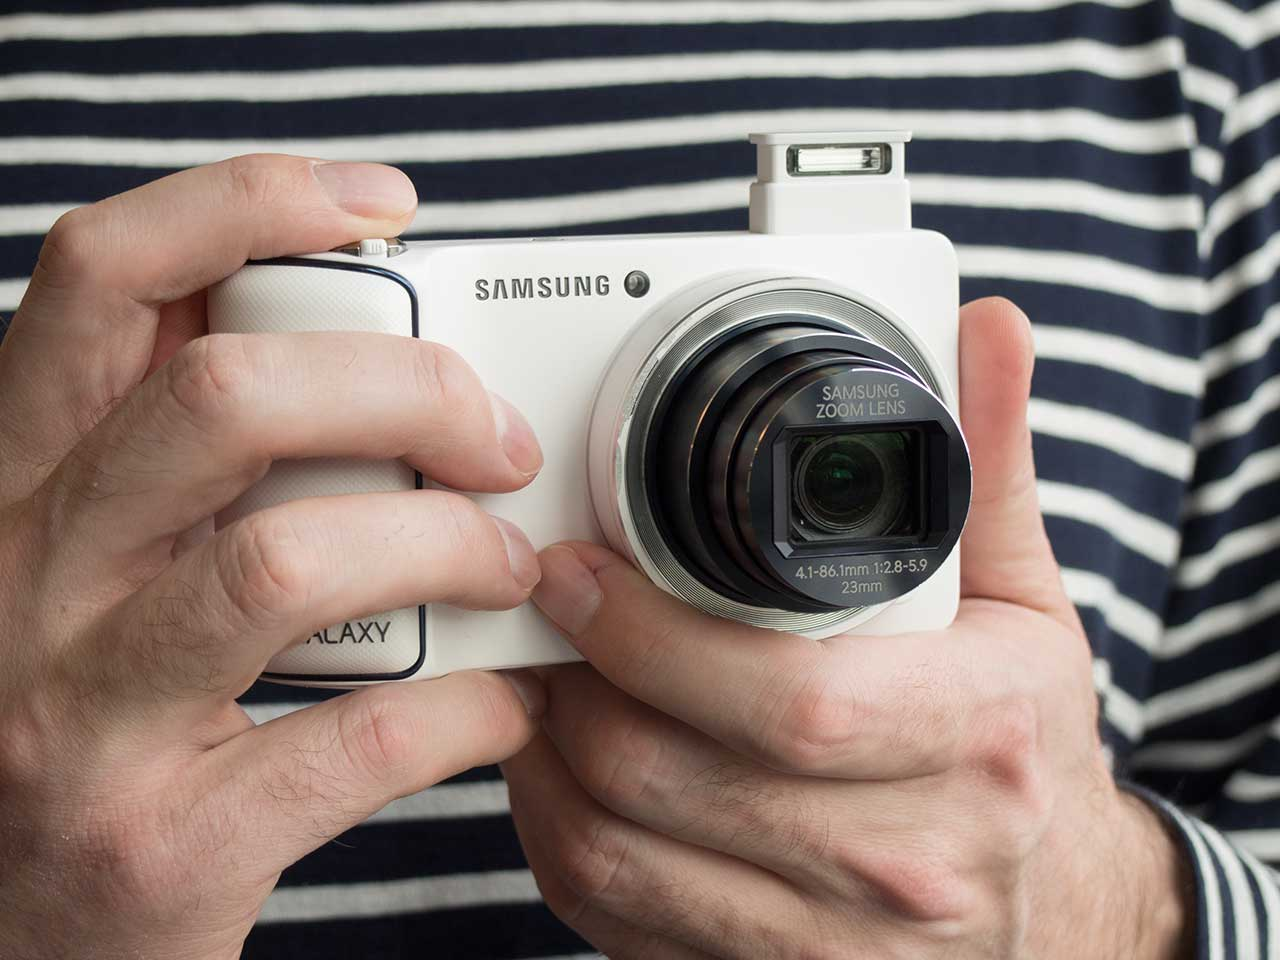 What will smartphones cameras of the future look like?